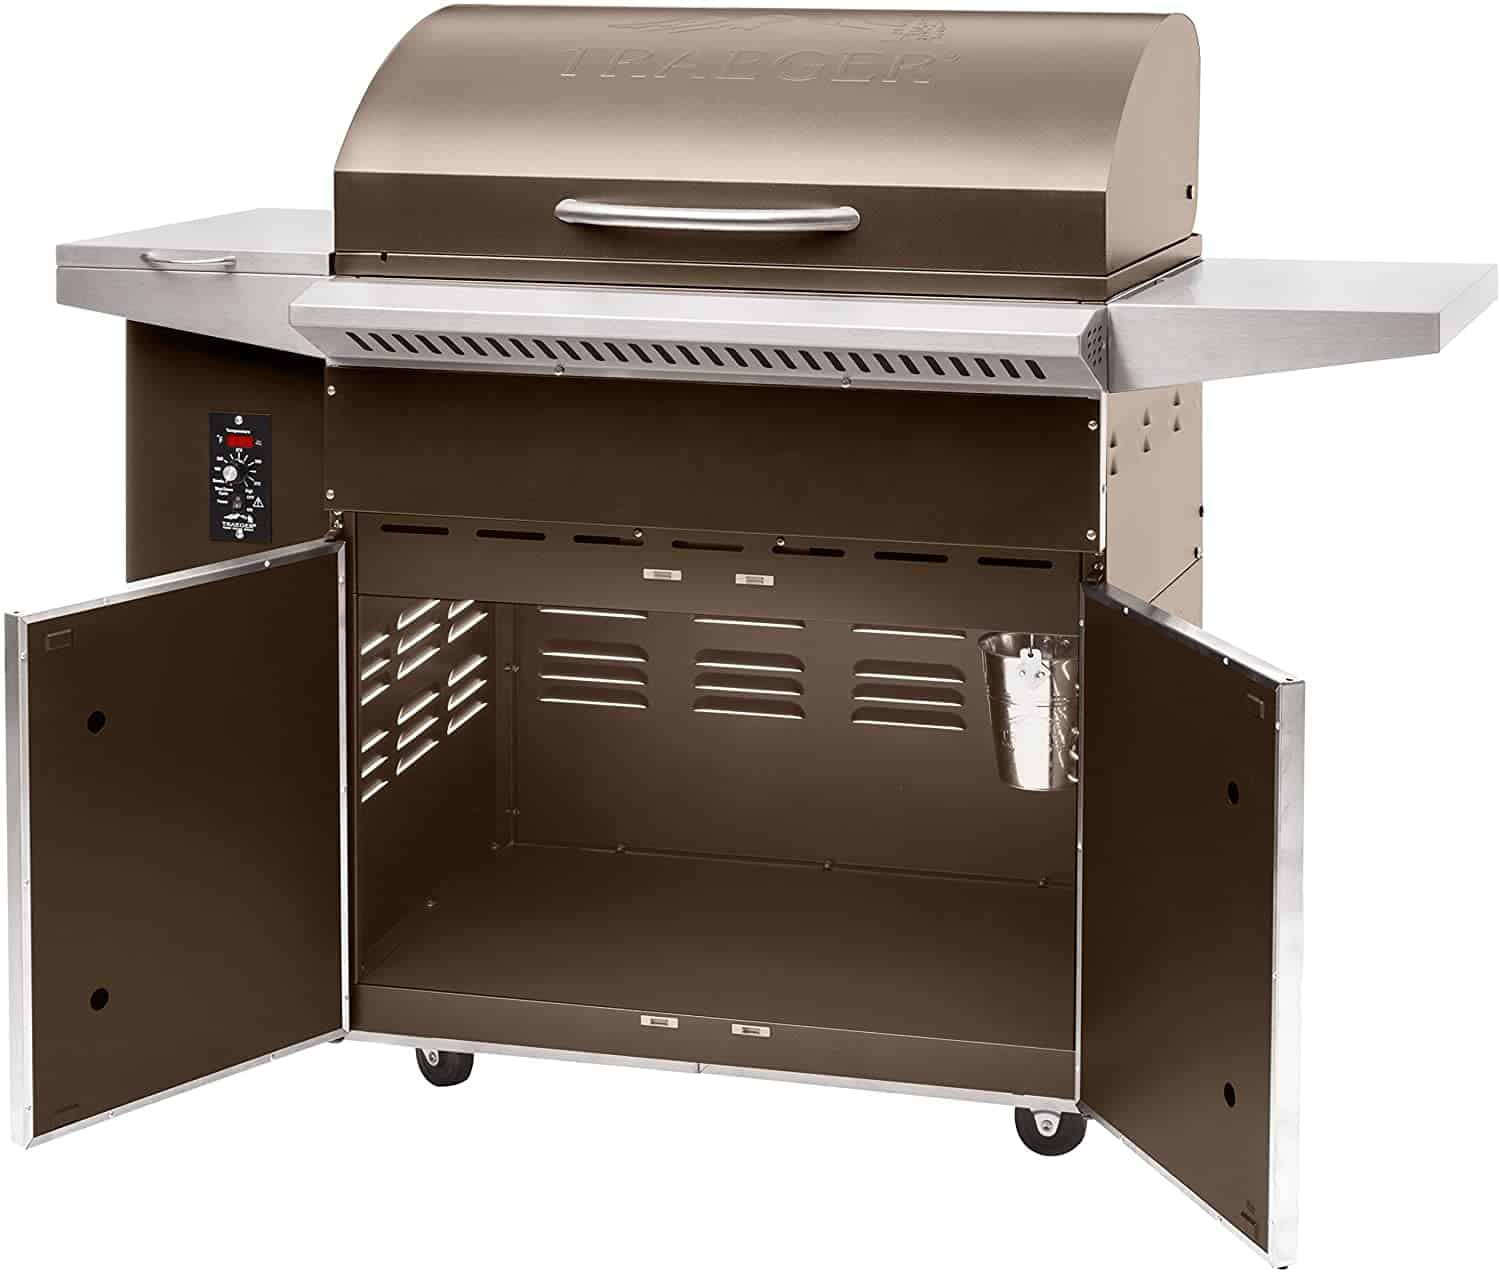 Most shelf space: Traeger Grills Select Elite Wood Pellet Grill